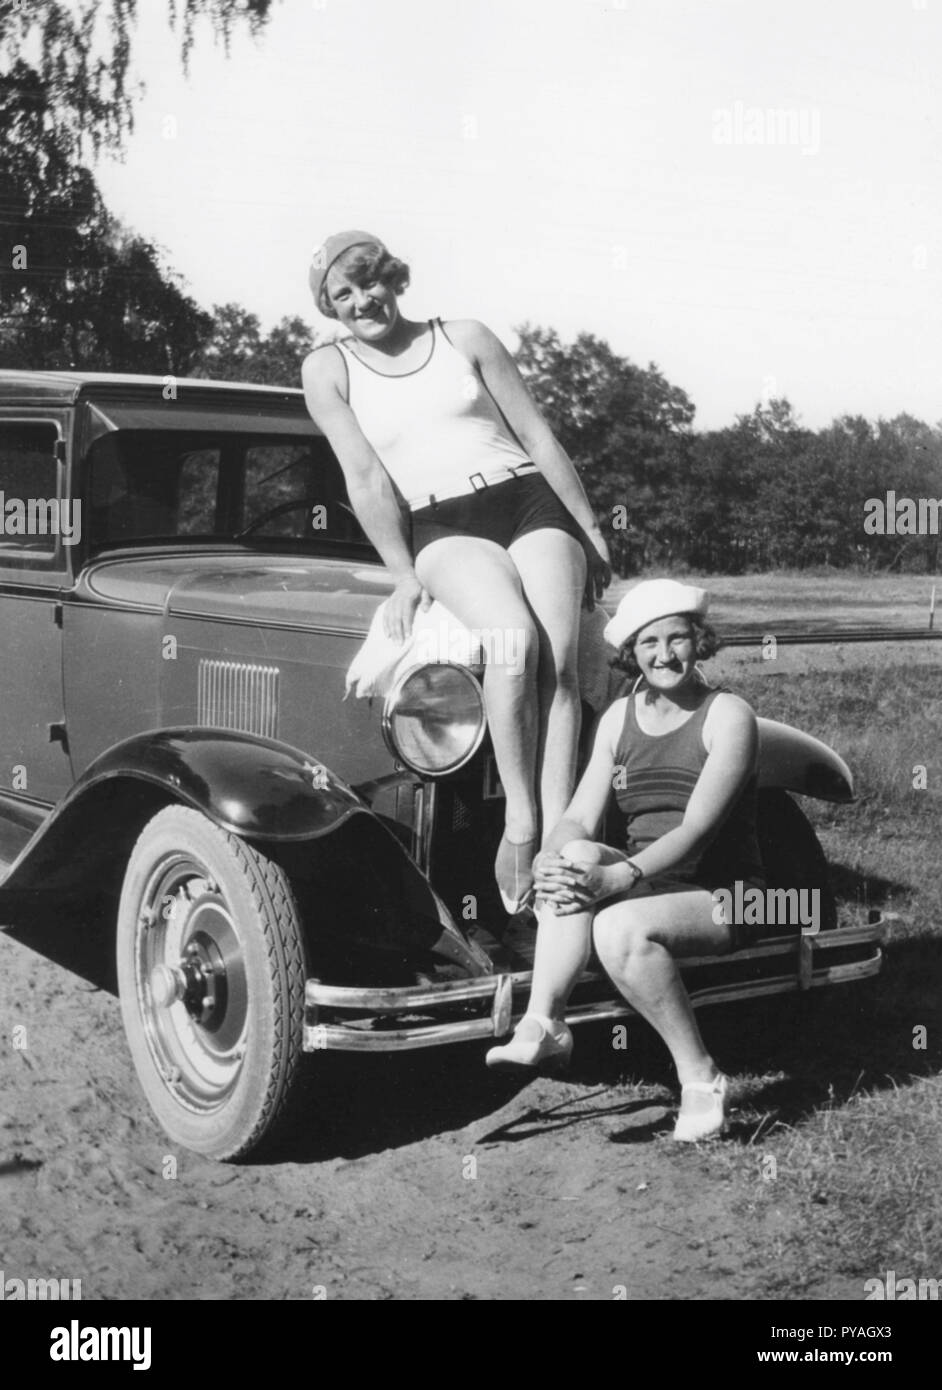 Fun in the 1930s. Two young women in bathing suits are sitting on the hood and front of a car. Sweden 1932 - Stock Image